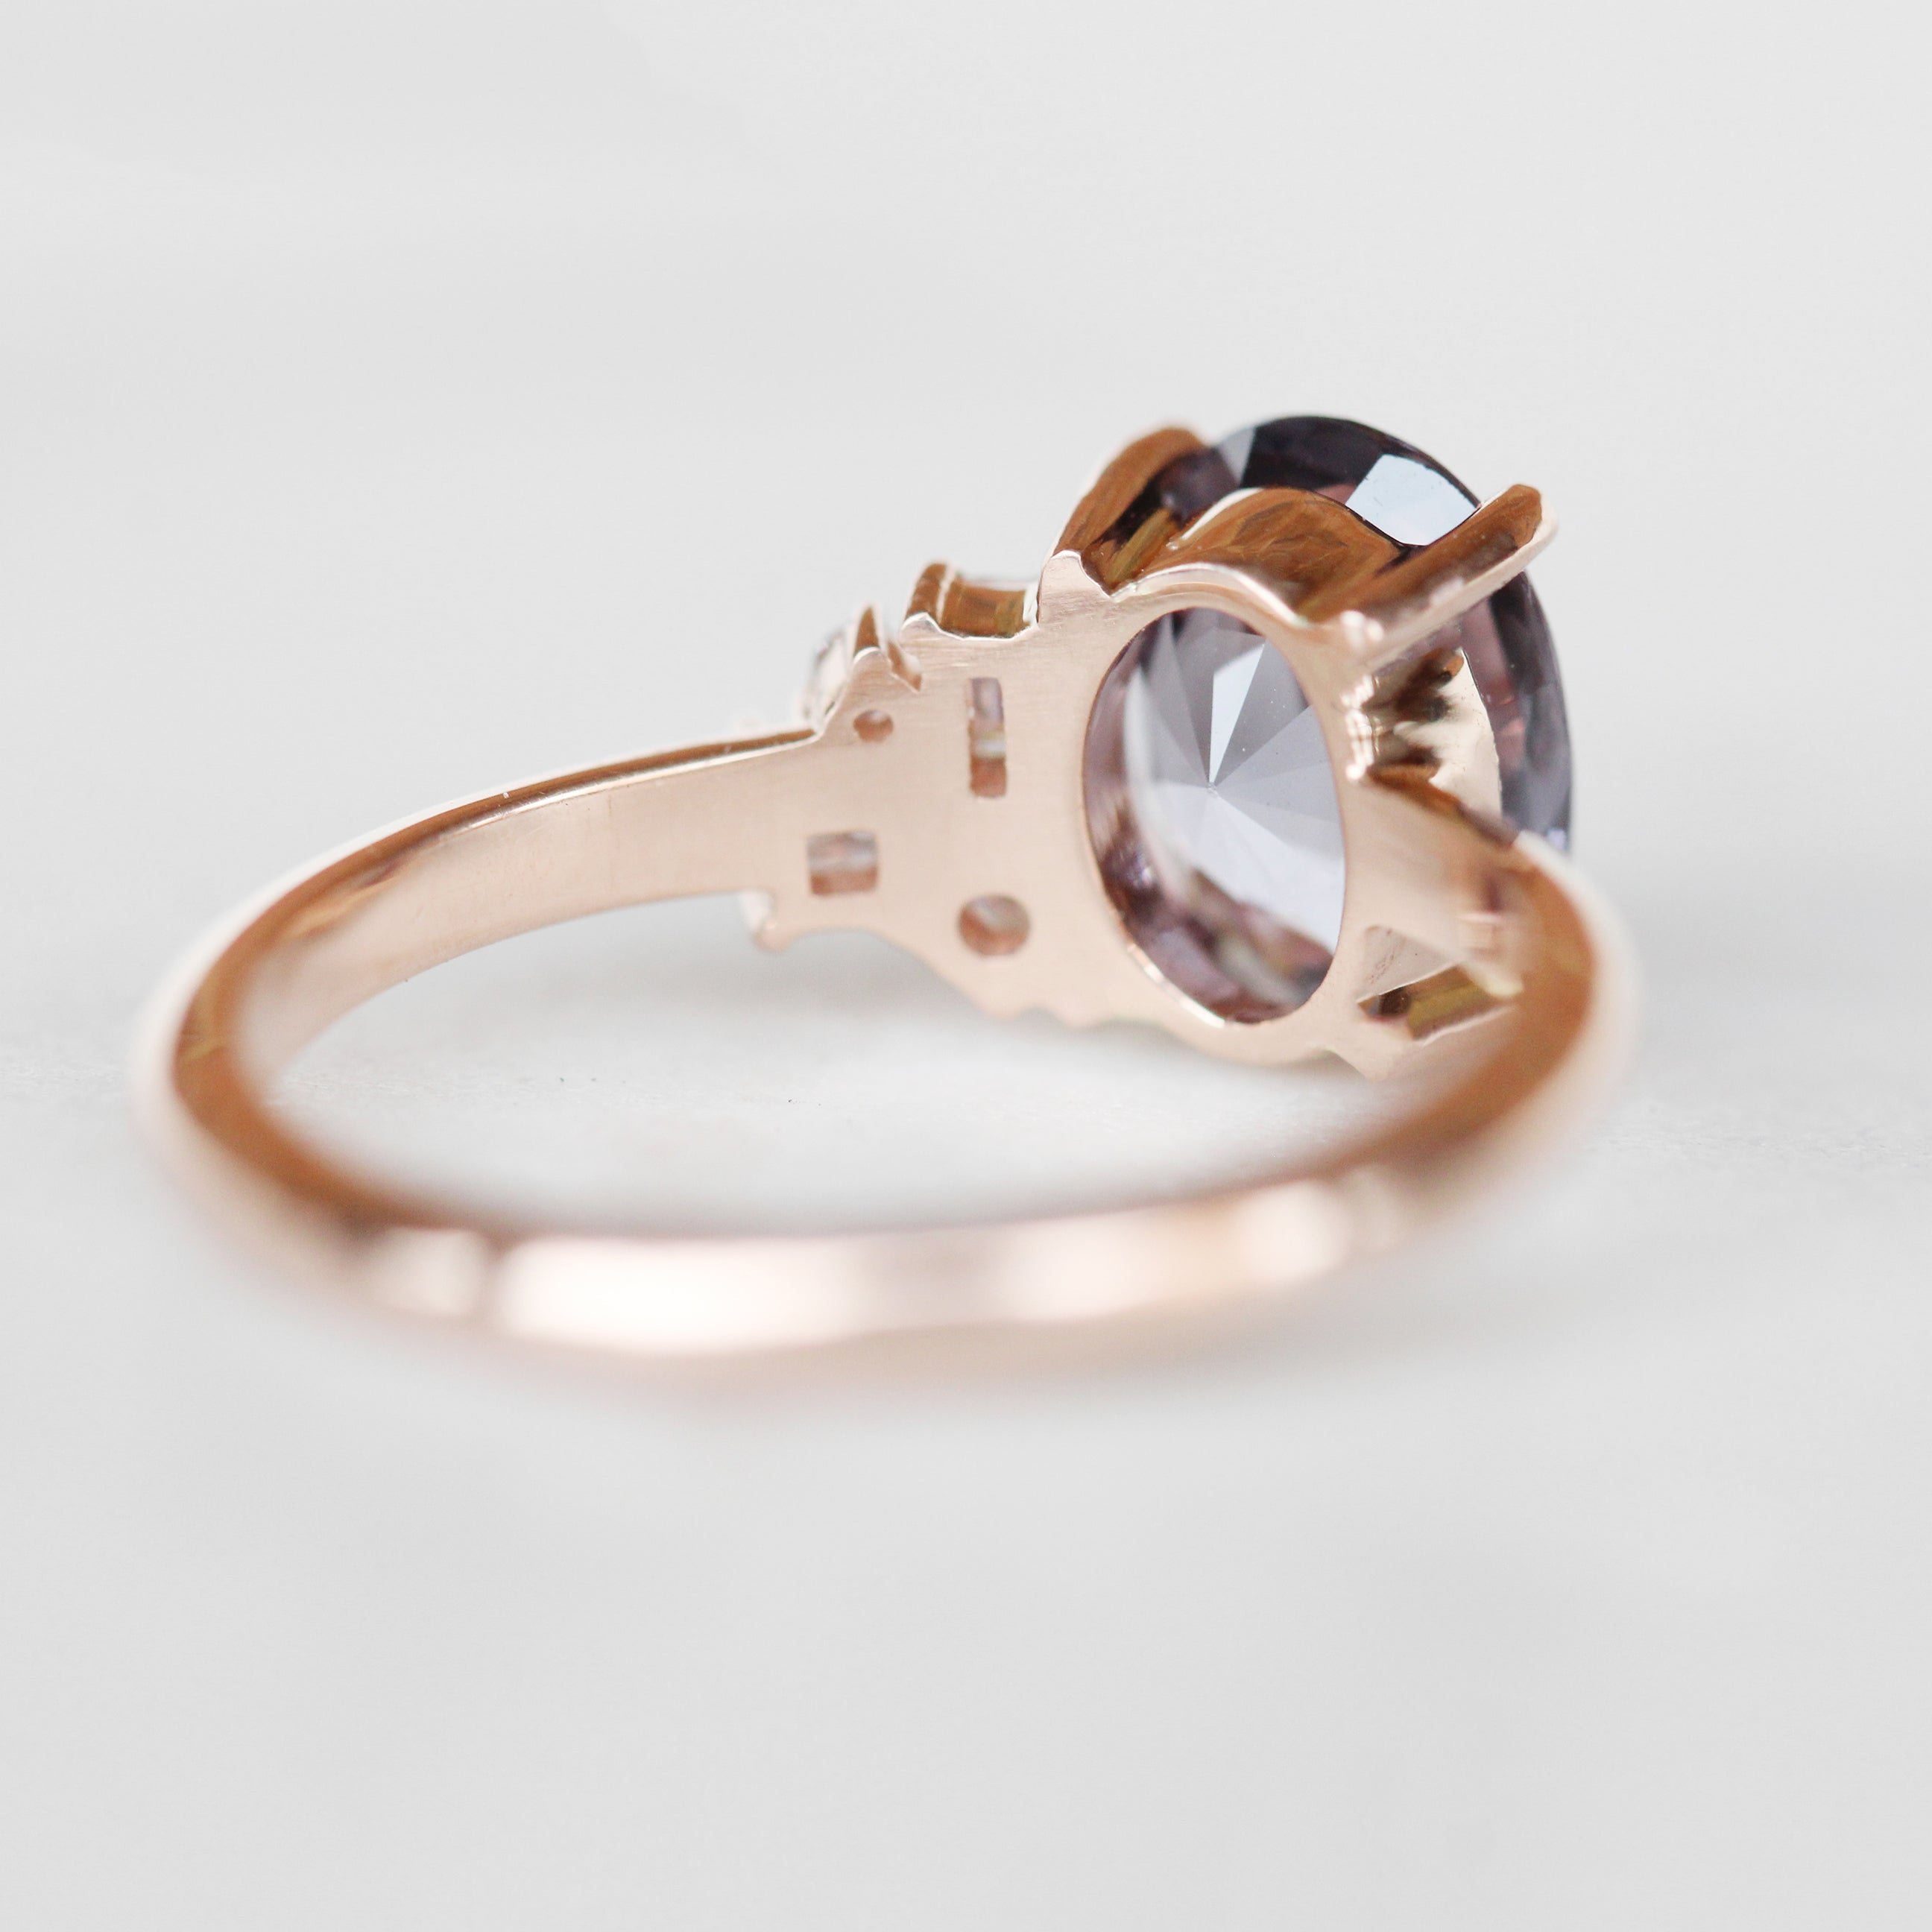 Abigail Ring with a 2.03 Carat Oval Sapphire and a Cluster Diamonds in 14k Rose Gold - Ready to Size and Ship - Salt & Pepper Celestial Diamond Engagement Rings and Wedding Bands  by Midwinter Co.